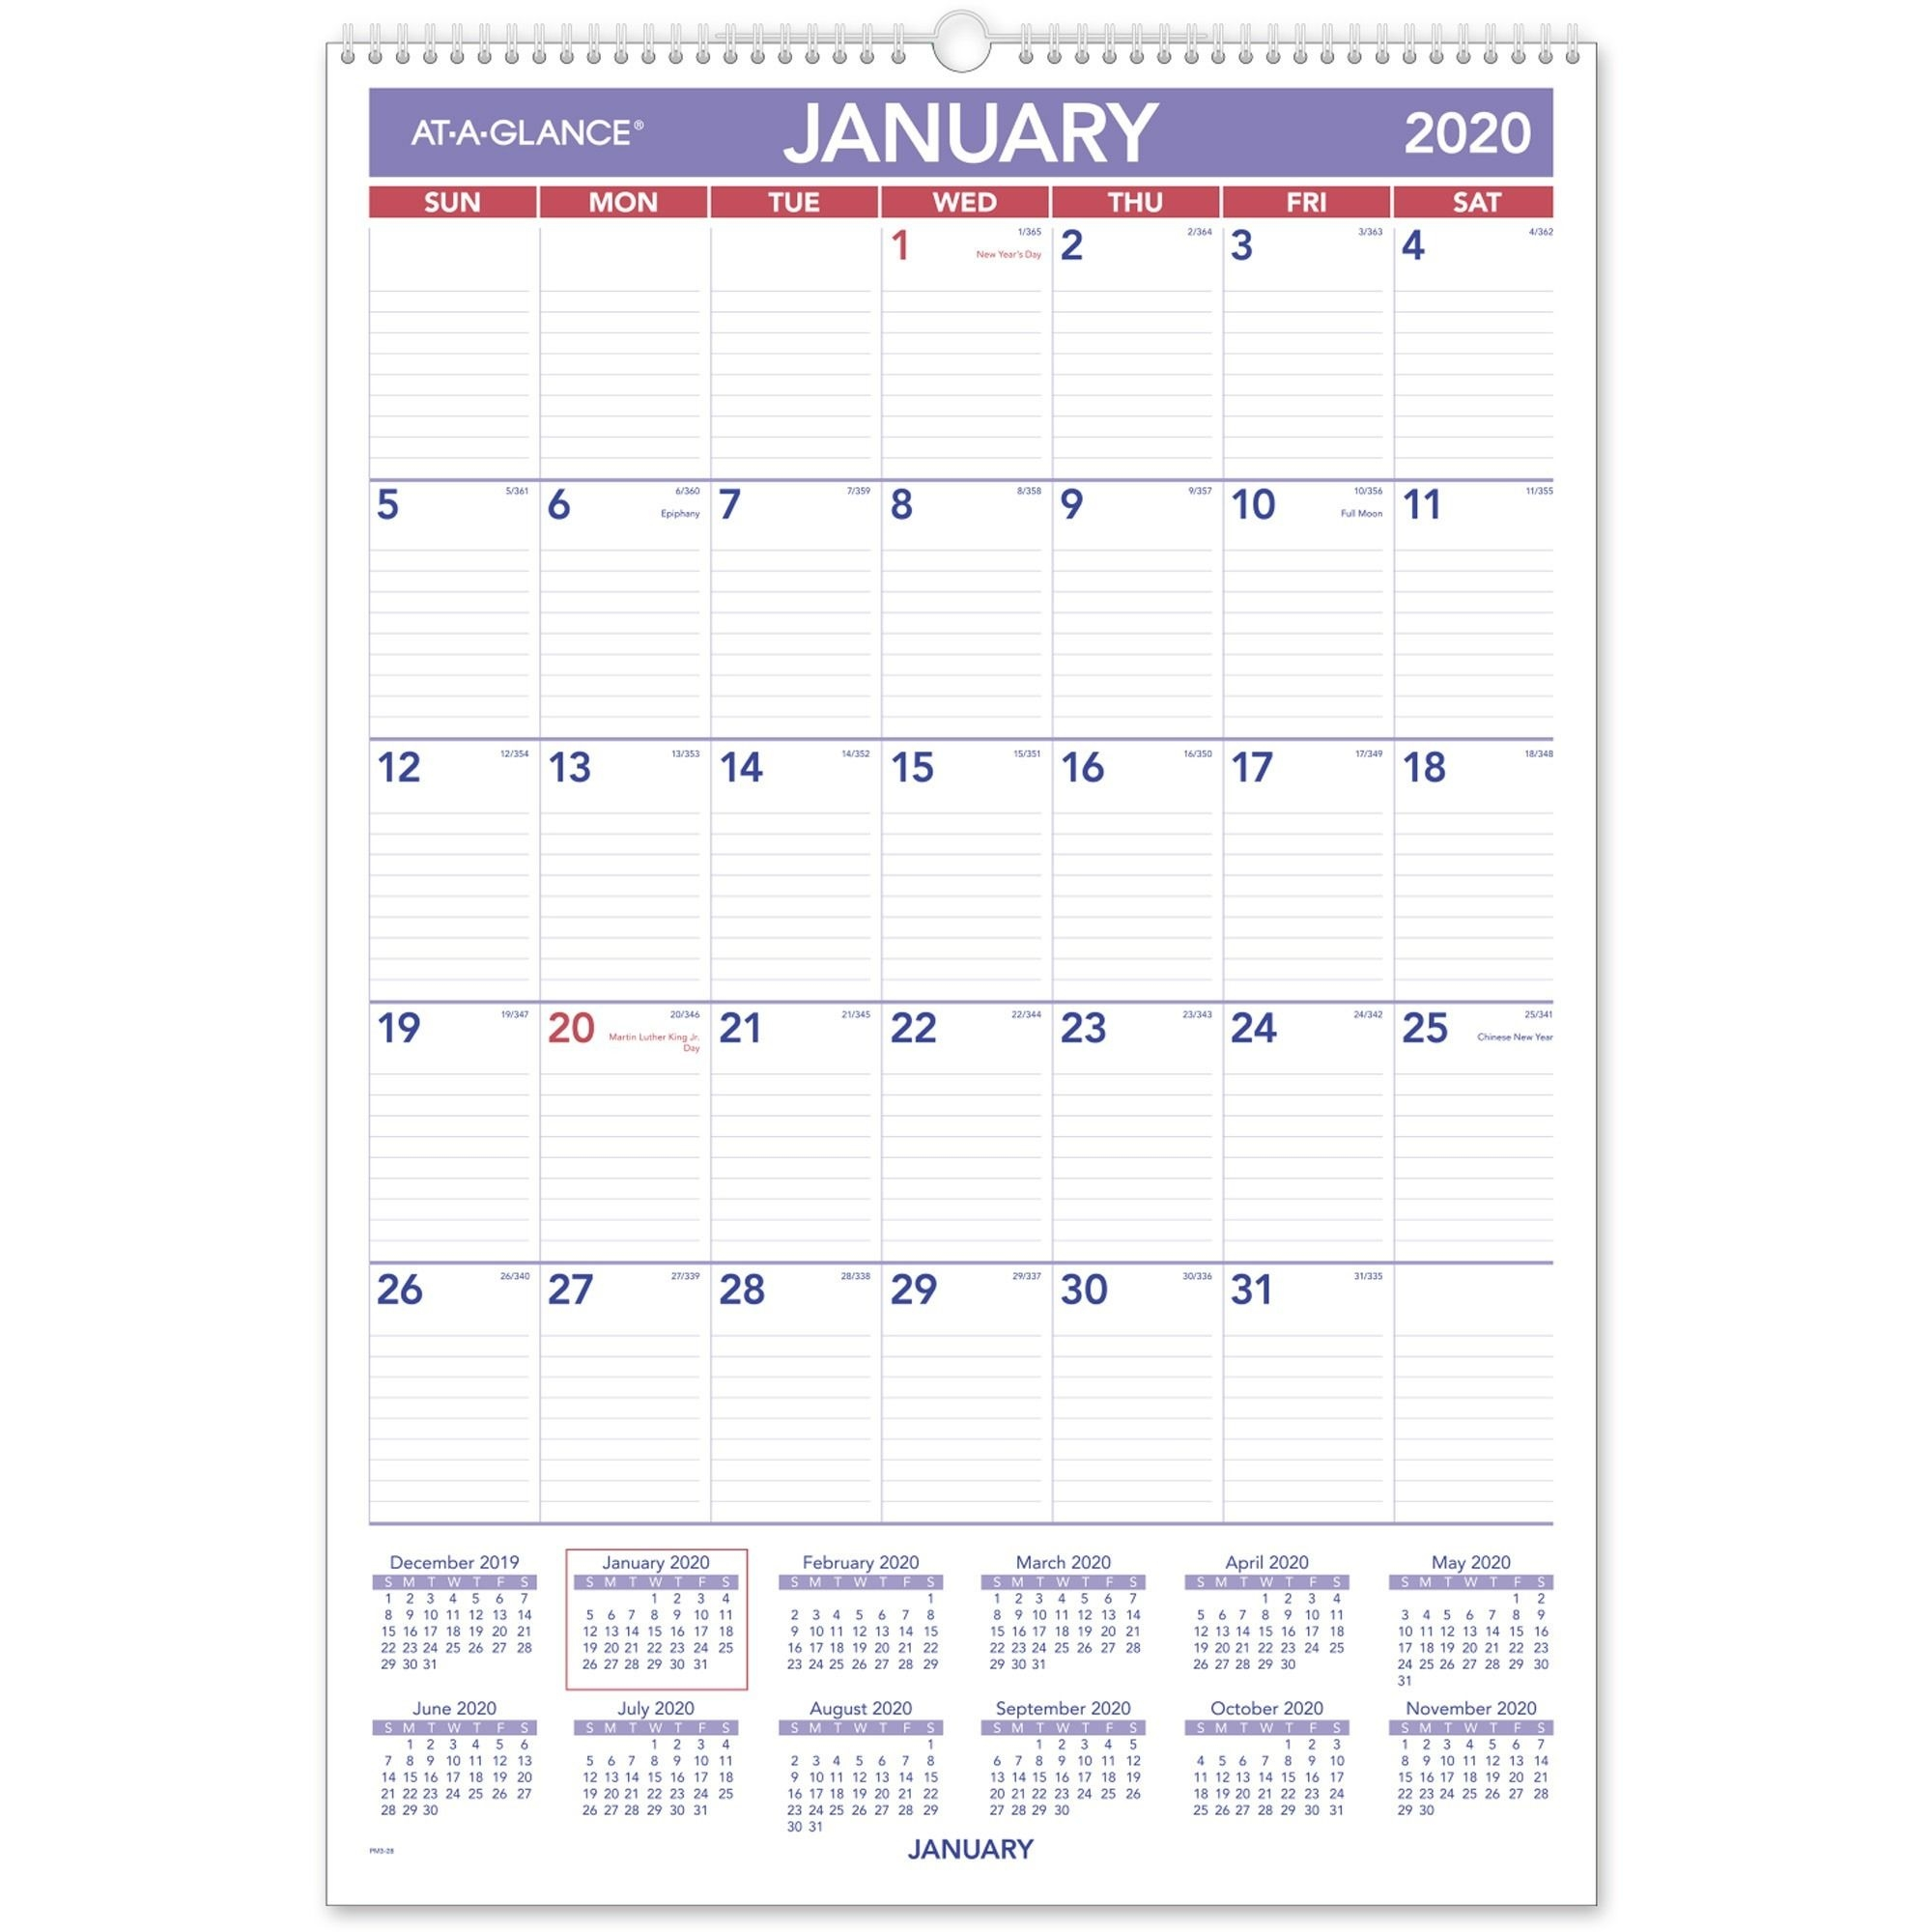 """At-A-Glance Recycled Monthly Wall Calendar - Yes - Monthly - 1 Year -  January 2020 Till December 2020 - 1 Month Single Page Layout - 15 1/2"""" X 22  3/4"""""""